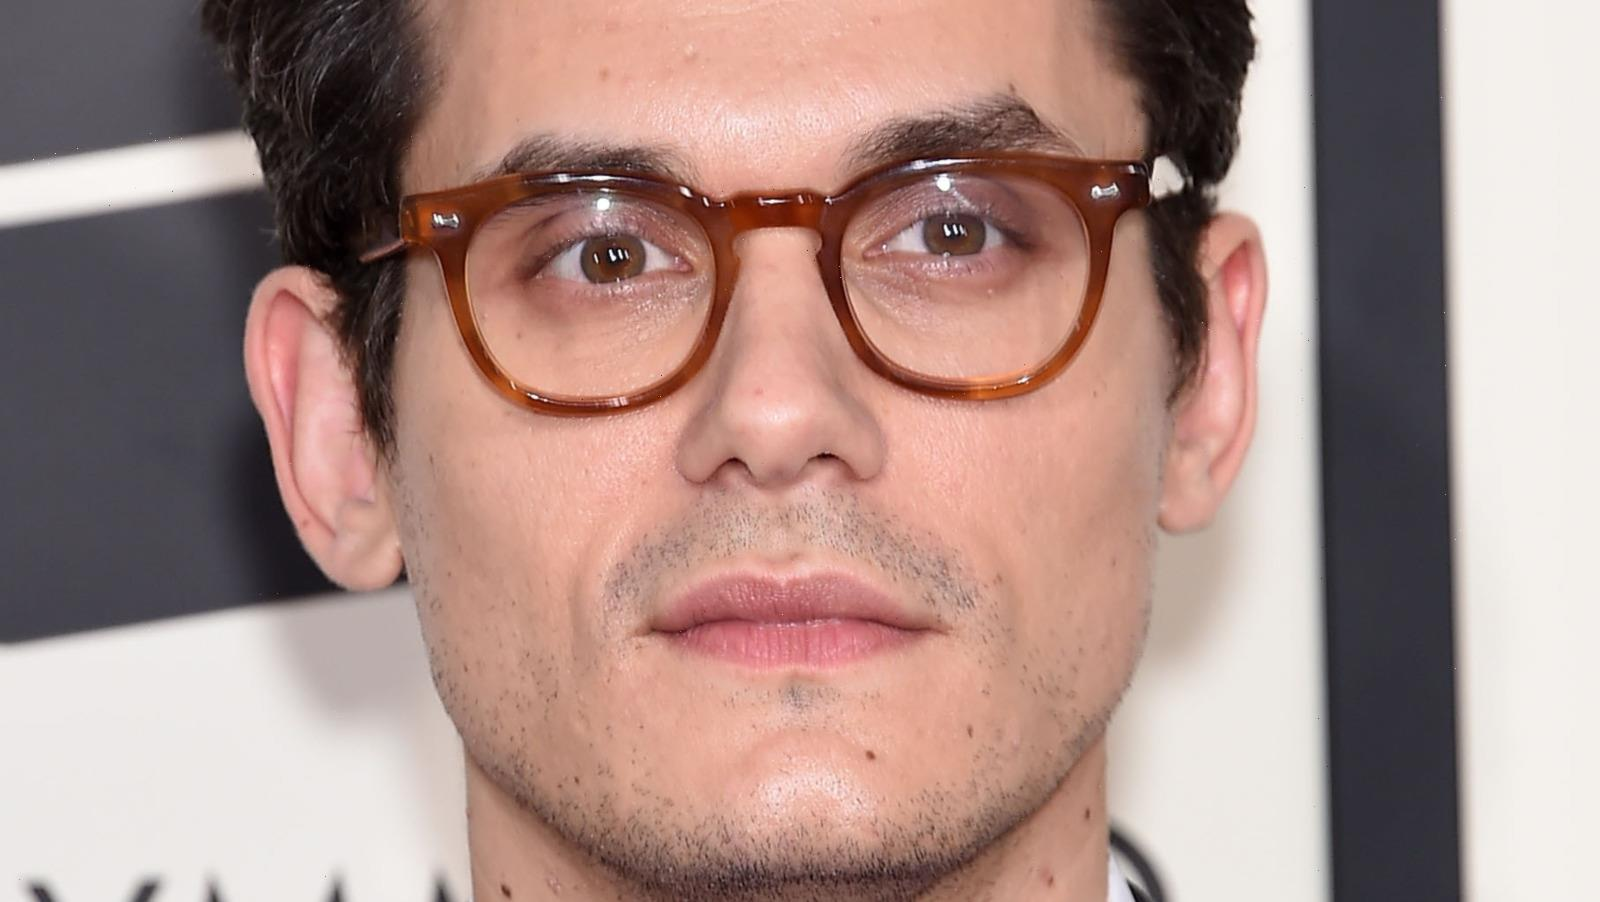 What's Really Going On With John Mayer And Cazzie David?